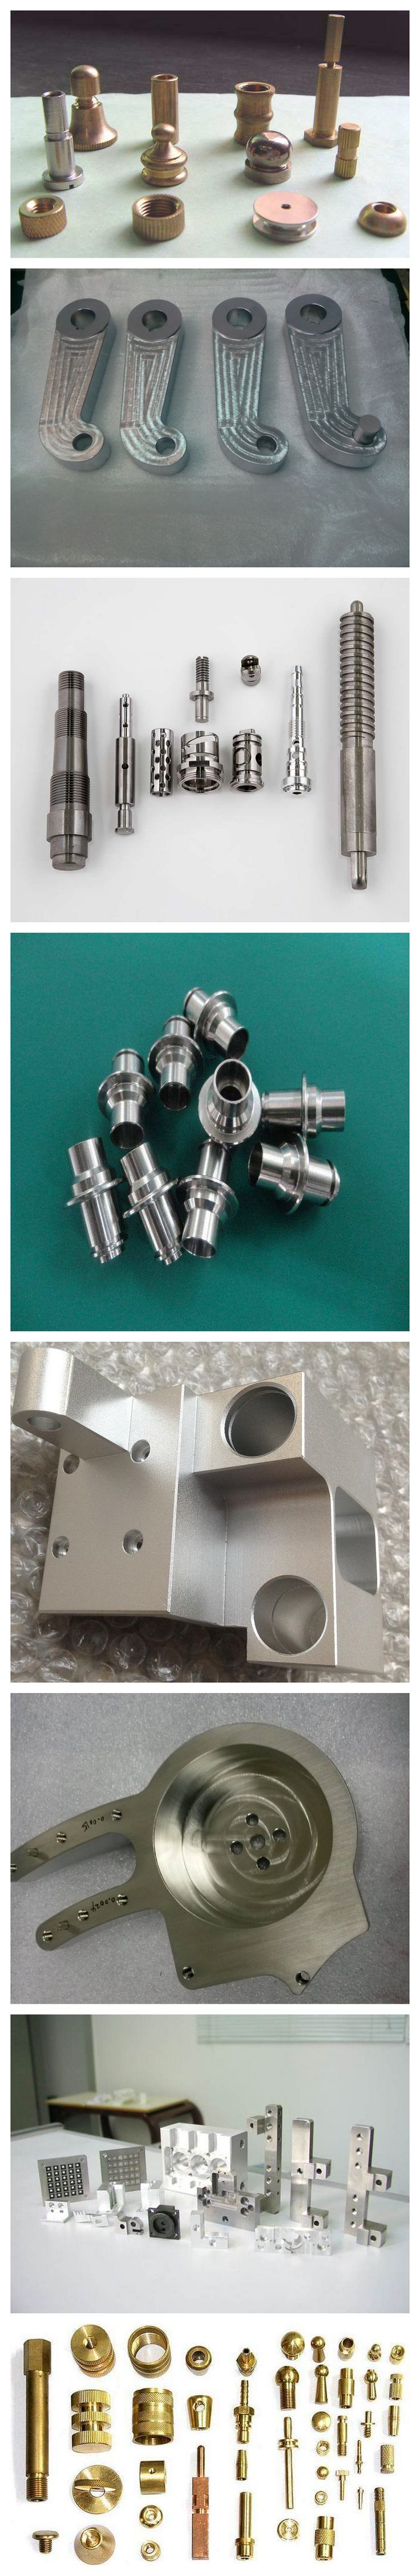 We are specialized in designing and manufacturing all types of metal parts with excellence and low price. We can manufacture precision machined parts,aluminum parts,copper parts,ally parts, stamping.and We can custom  for you If you would like to give us an opportunity, pls send us 2D, 3D drawings or samples. winnie@metal-prototype.com http://www.metal-prototype.com/list-10-1.html